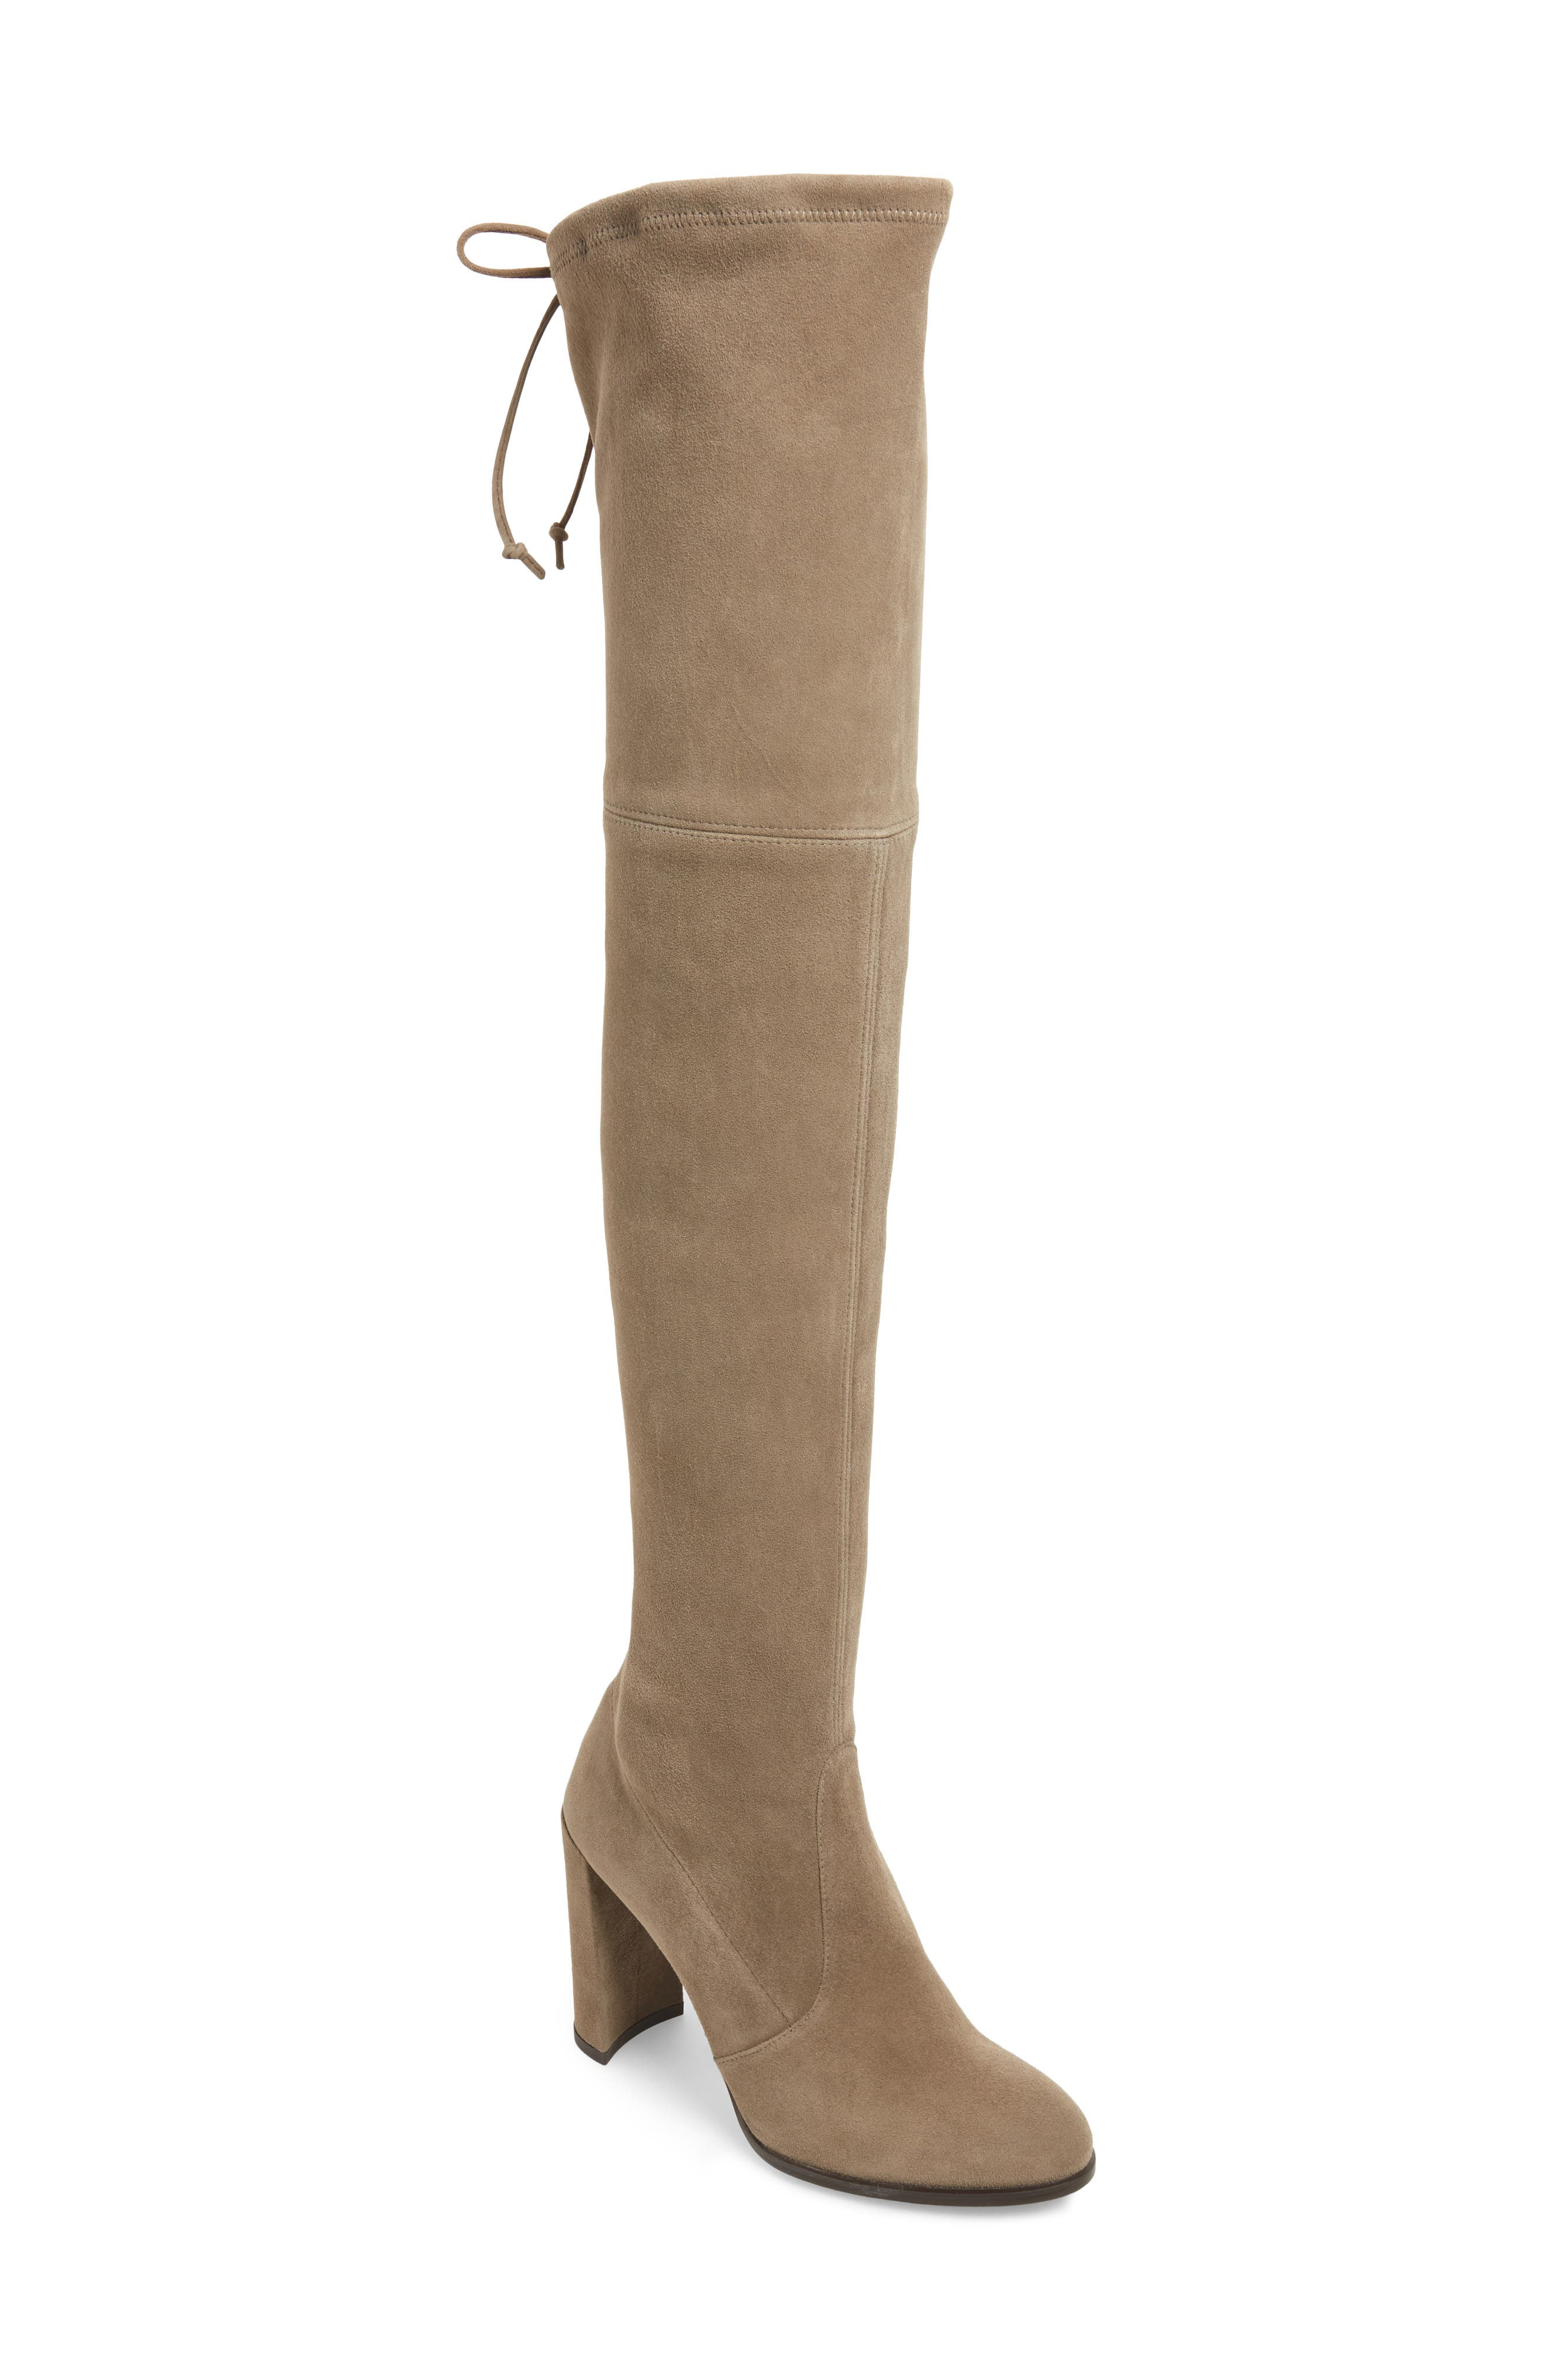 Hiline Over the Knee Boot,                             Main thumbnail 1, color,                             Praline Suede